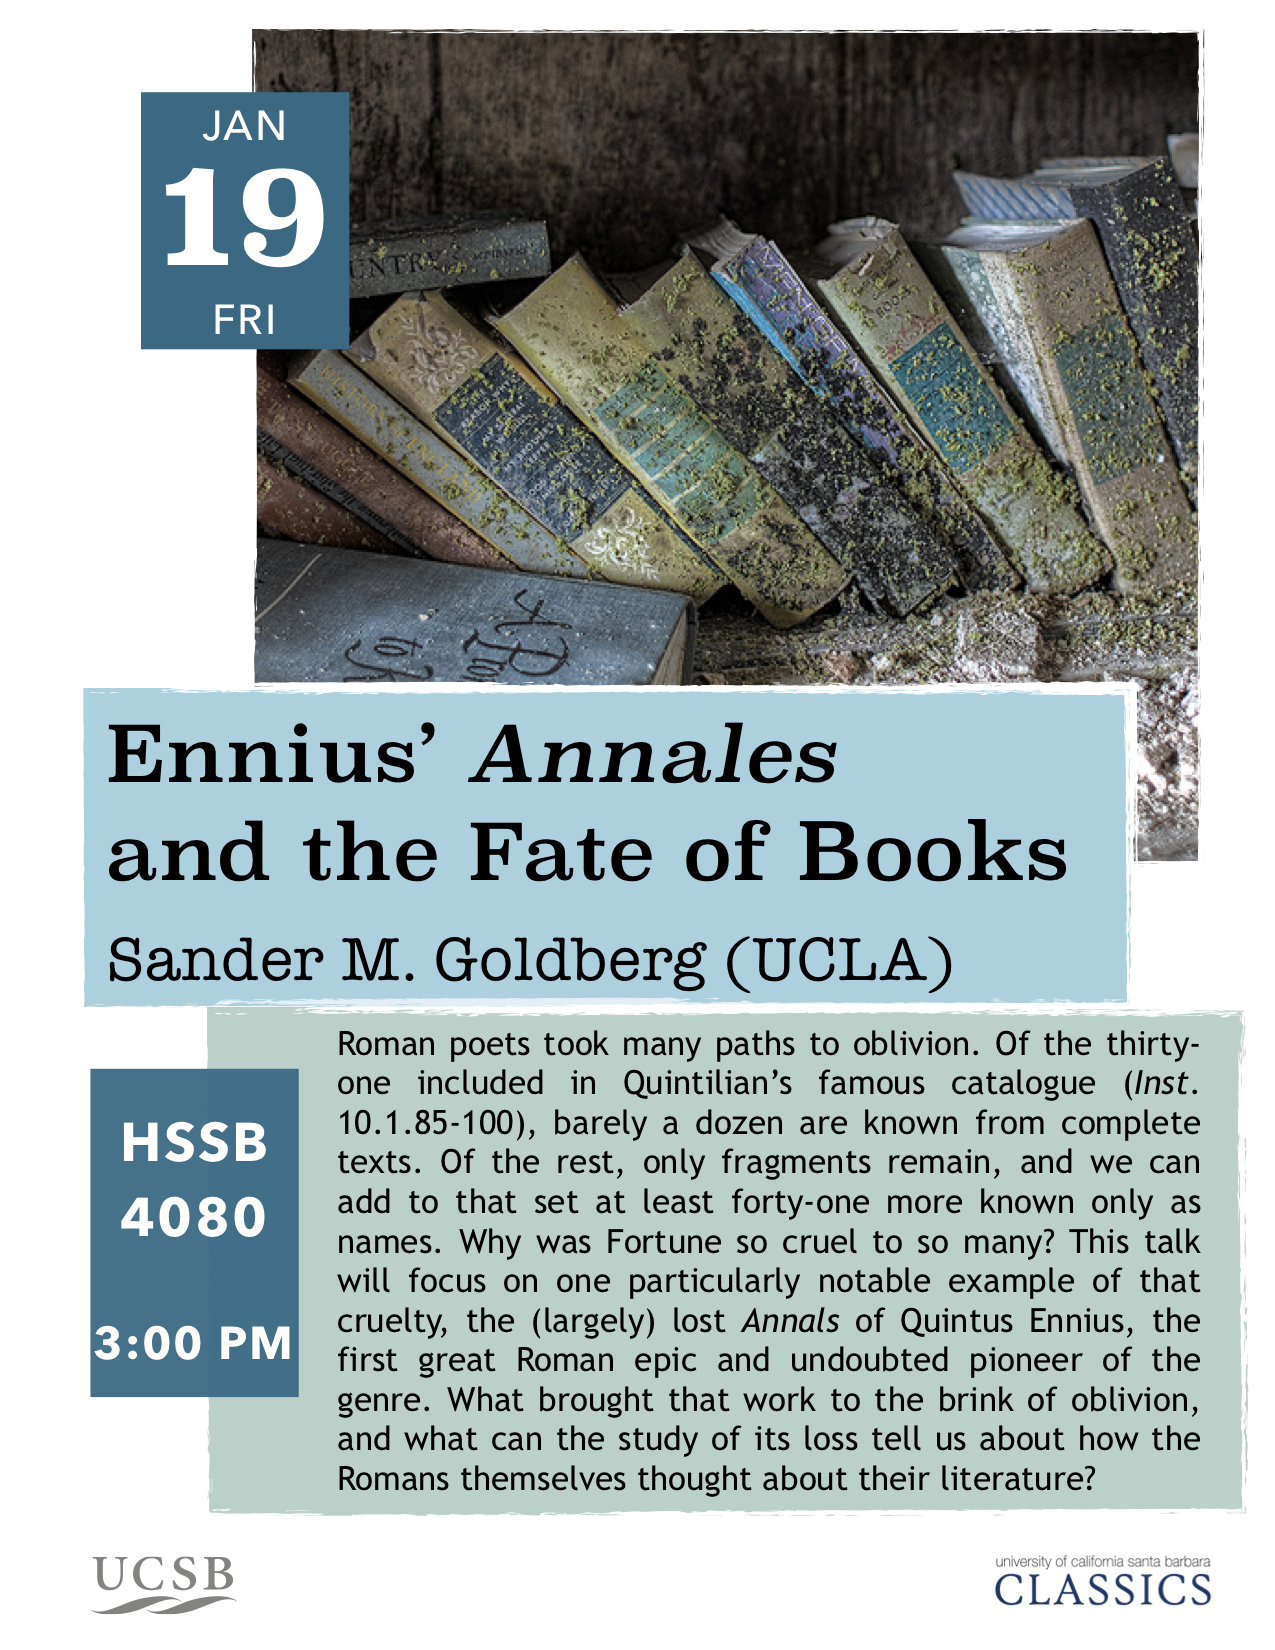 Sander M. Goldberg (UCLA) Ennius and the fata librorum @ HSSB 4080